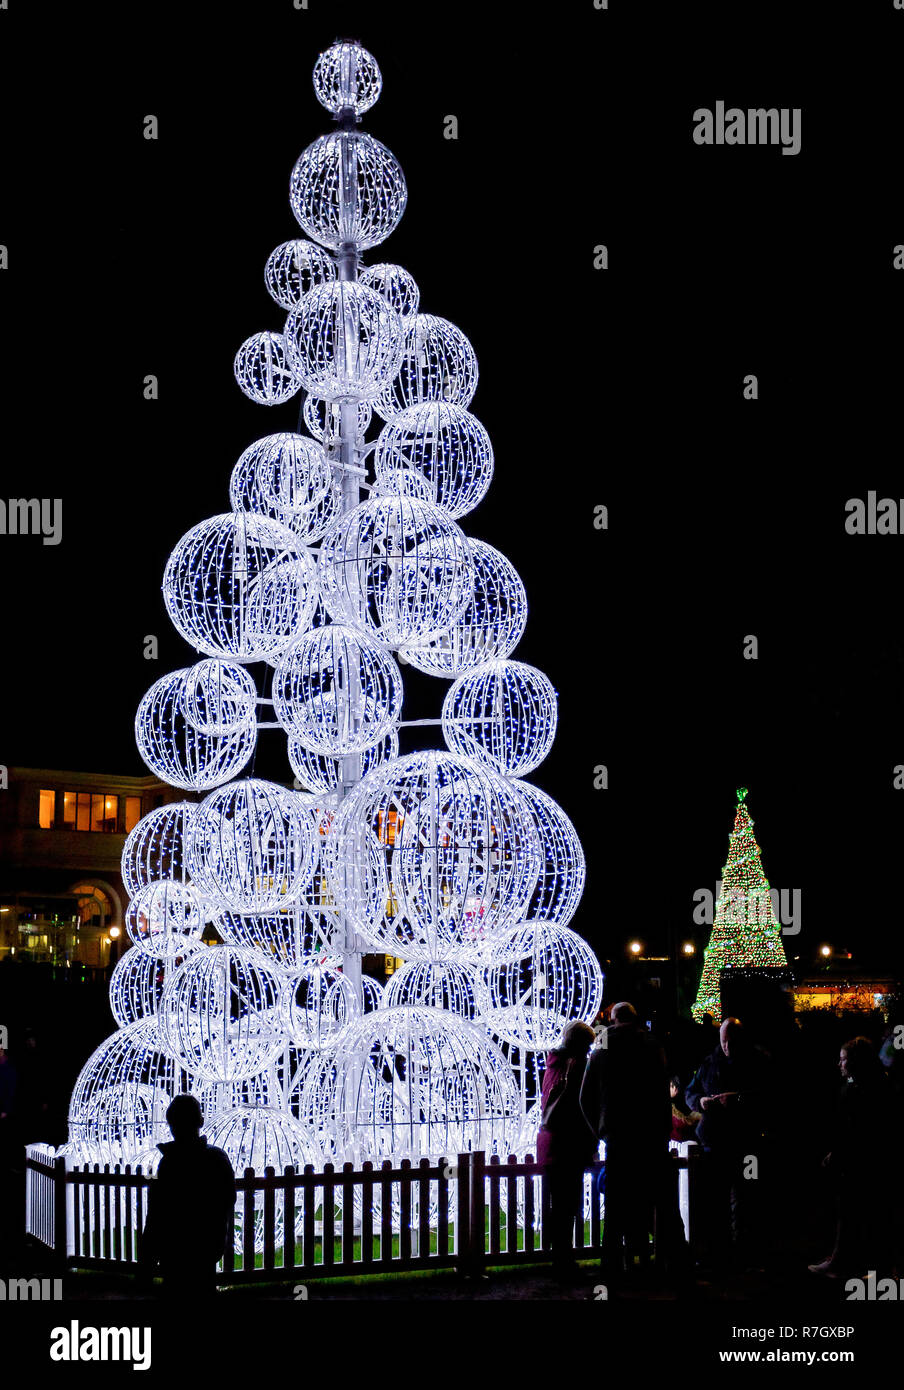 Huge Outdoor Illuminated Christmas Tree Made If White Balls